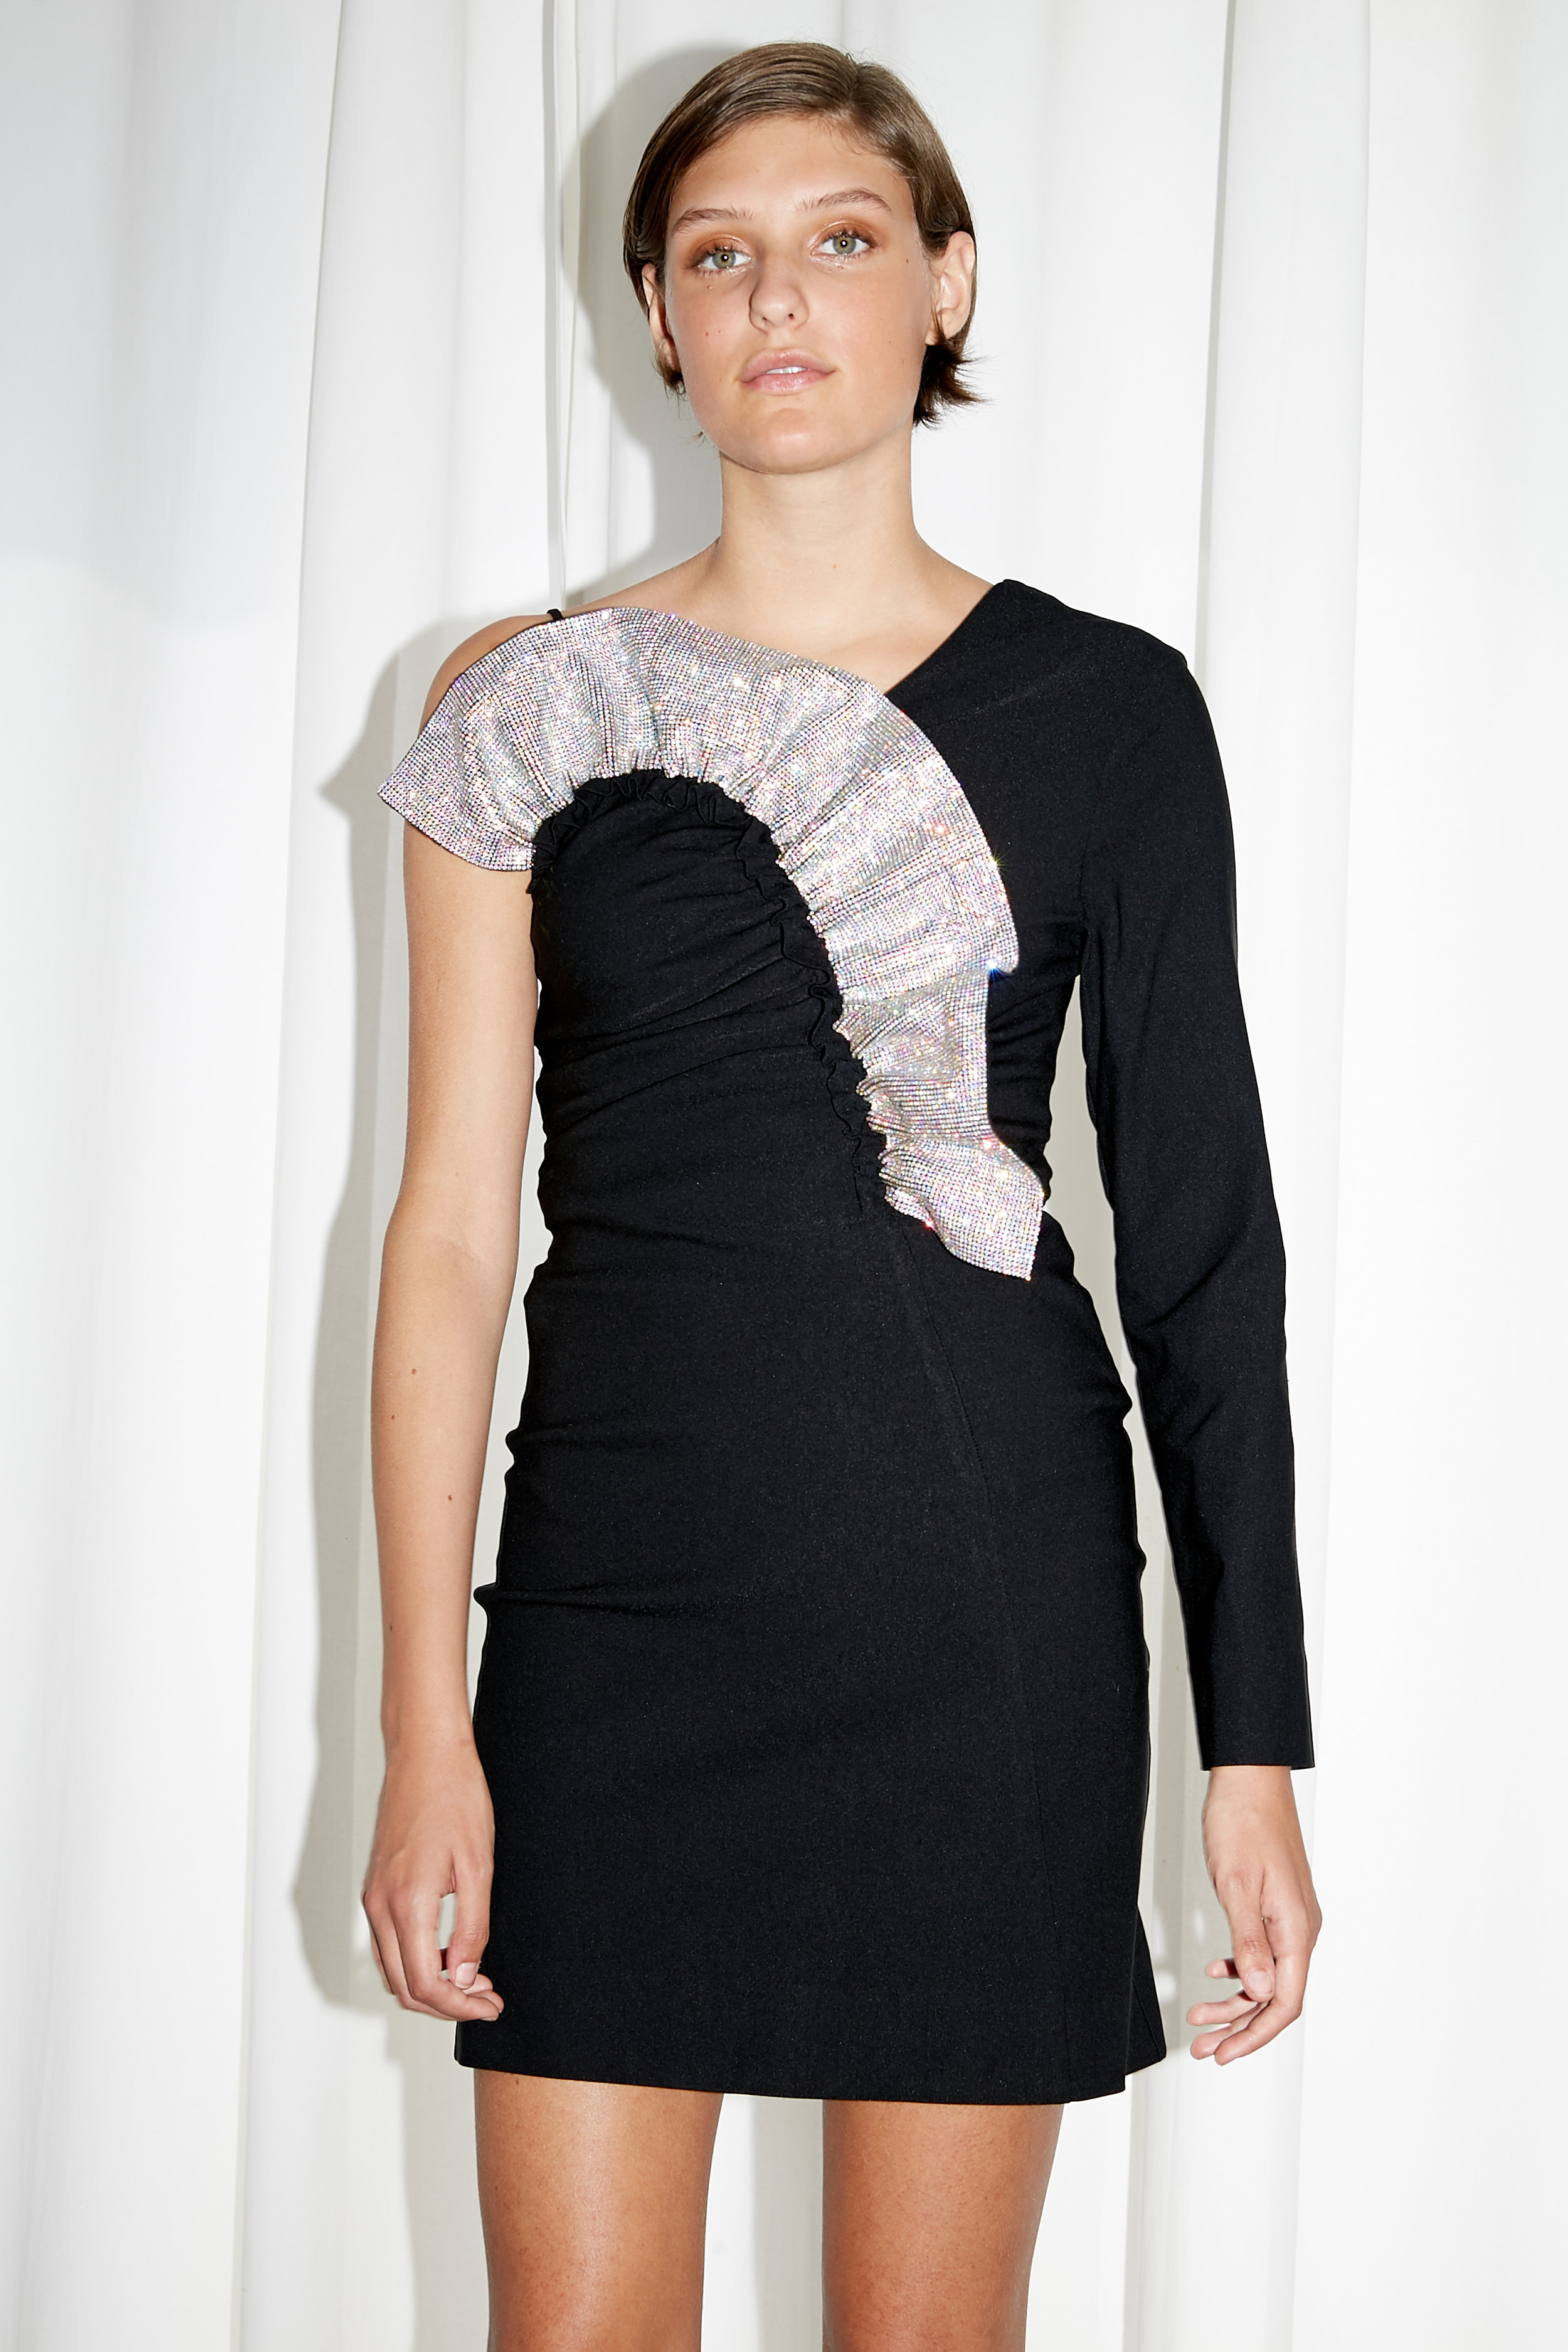 Model stands in short length one sleeve black dress with crystal ruffle neckline